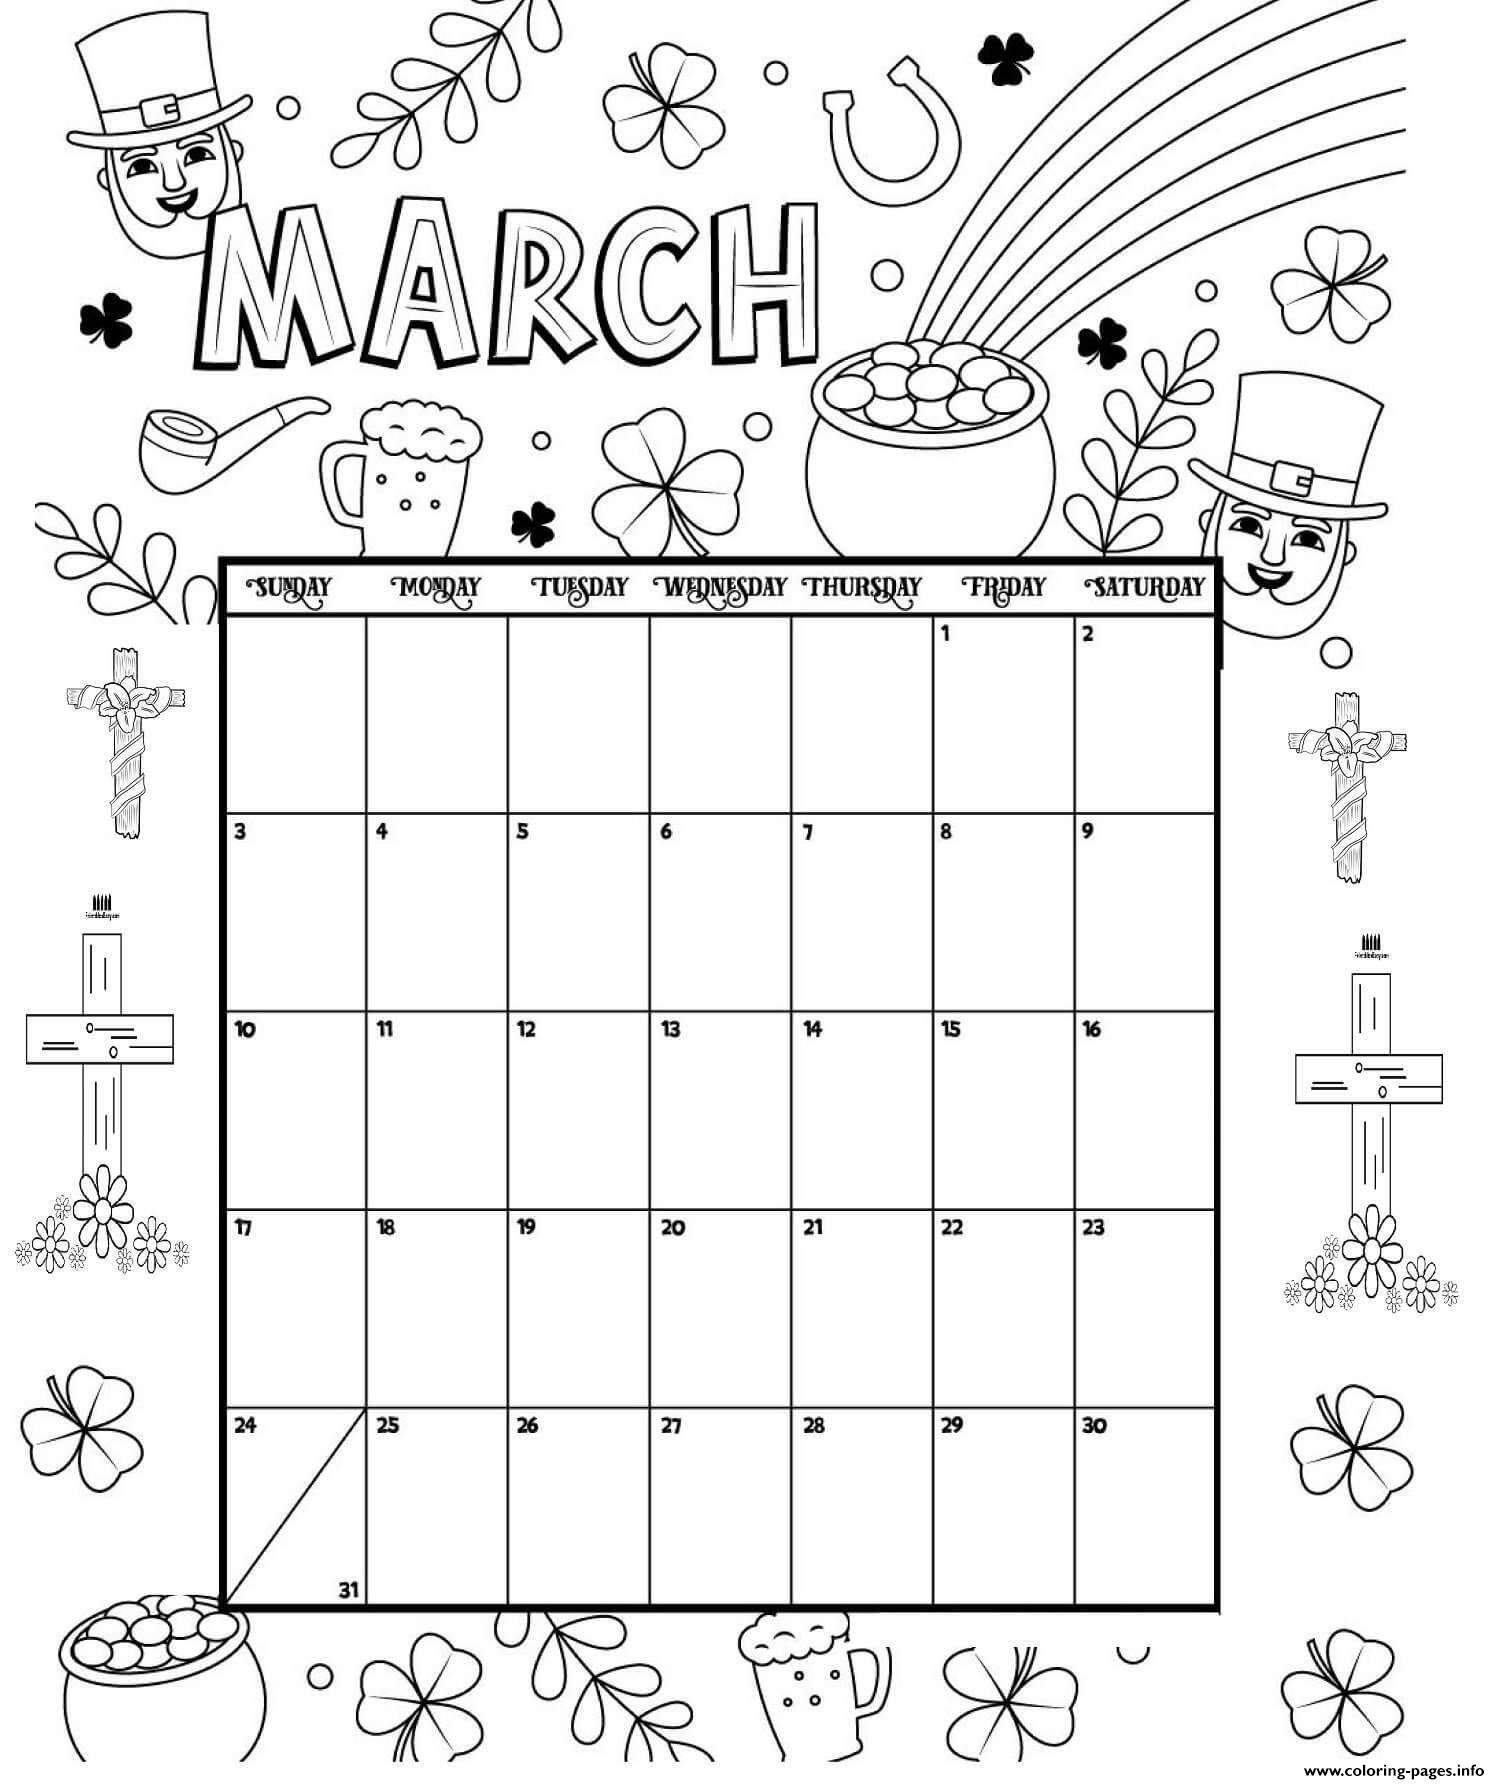 March Coloring Calendarges Printable 1547166132March Free regarding Printable Coloring 2020 Monthly Calendar